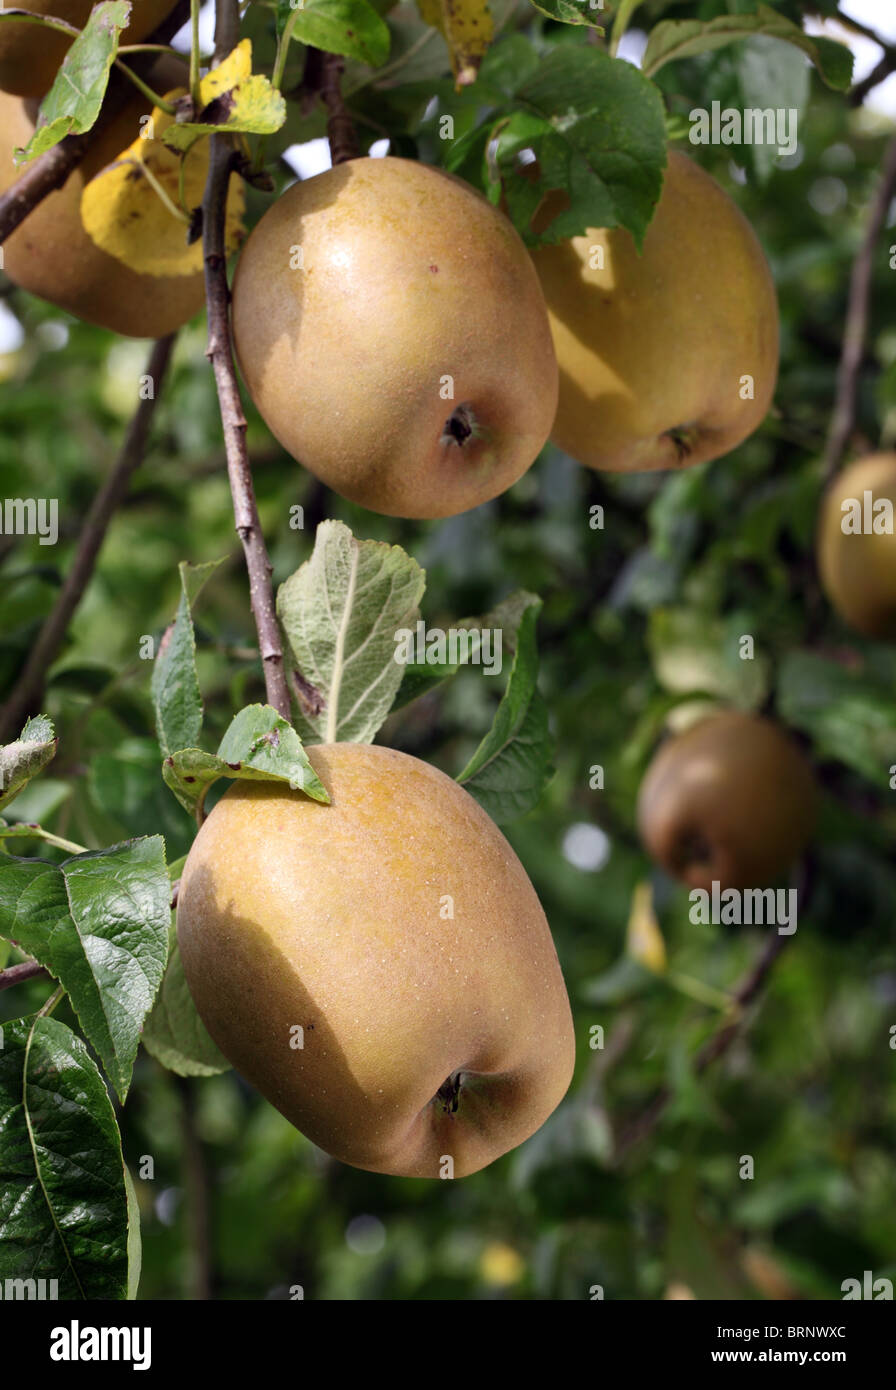 Russet apples ripening on a tree, orchard, Surrey, England, UK - Stock Image